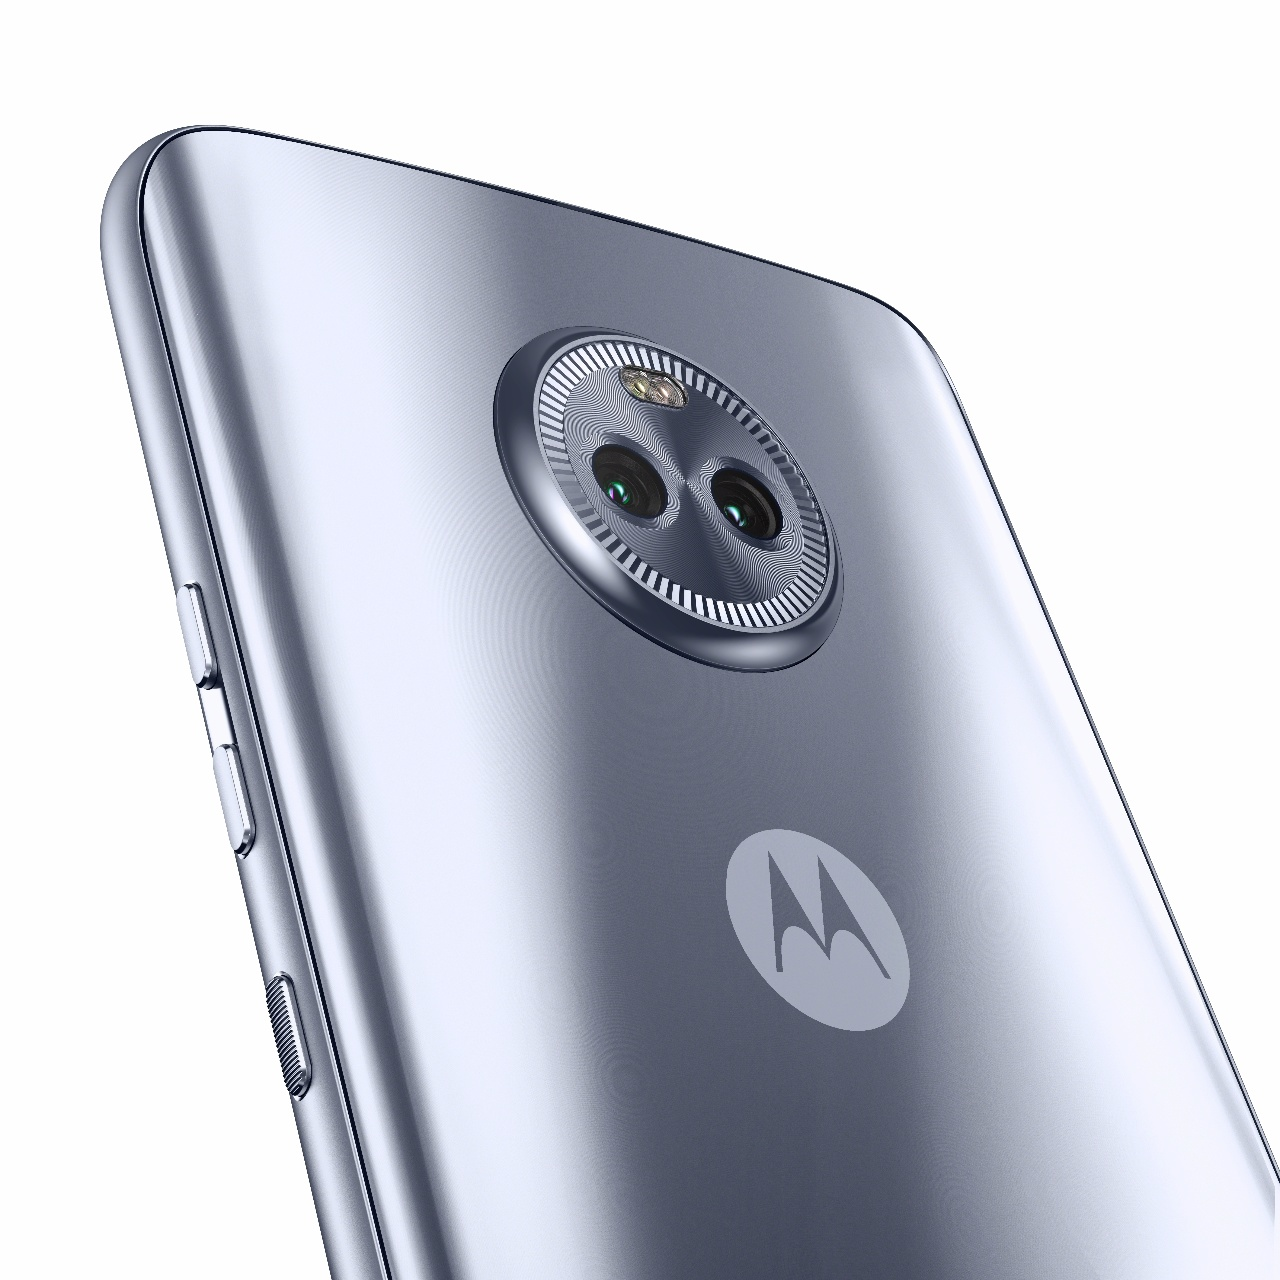 Moto X4 is Coming to Android One and Project Fi